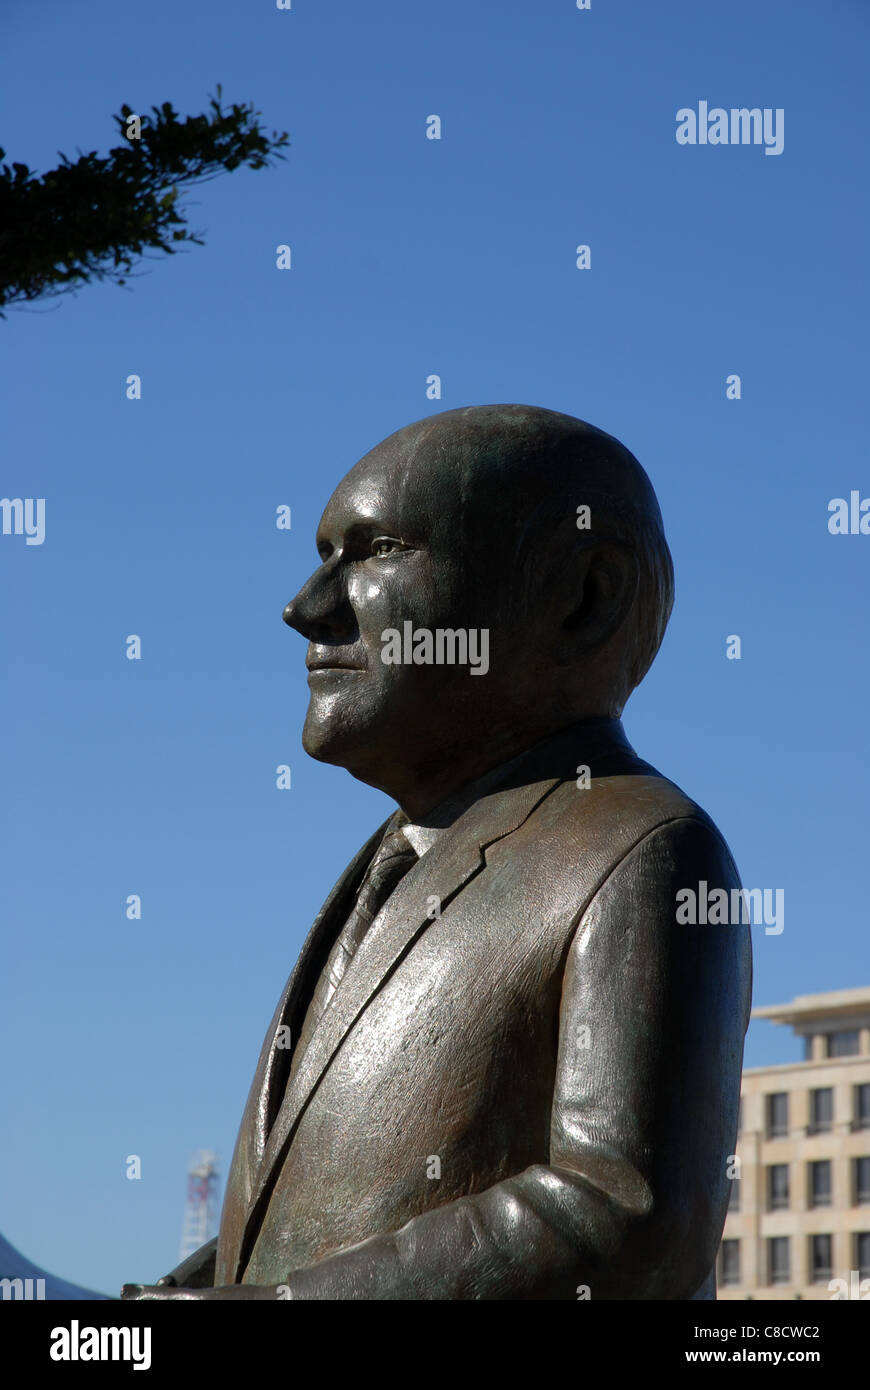 Statue of FW de Klerk, Nobel Square, V&A Waterfront, Cape Town, Western Cape, South Africa - Stock Image